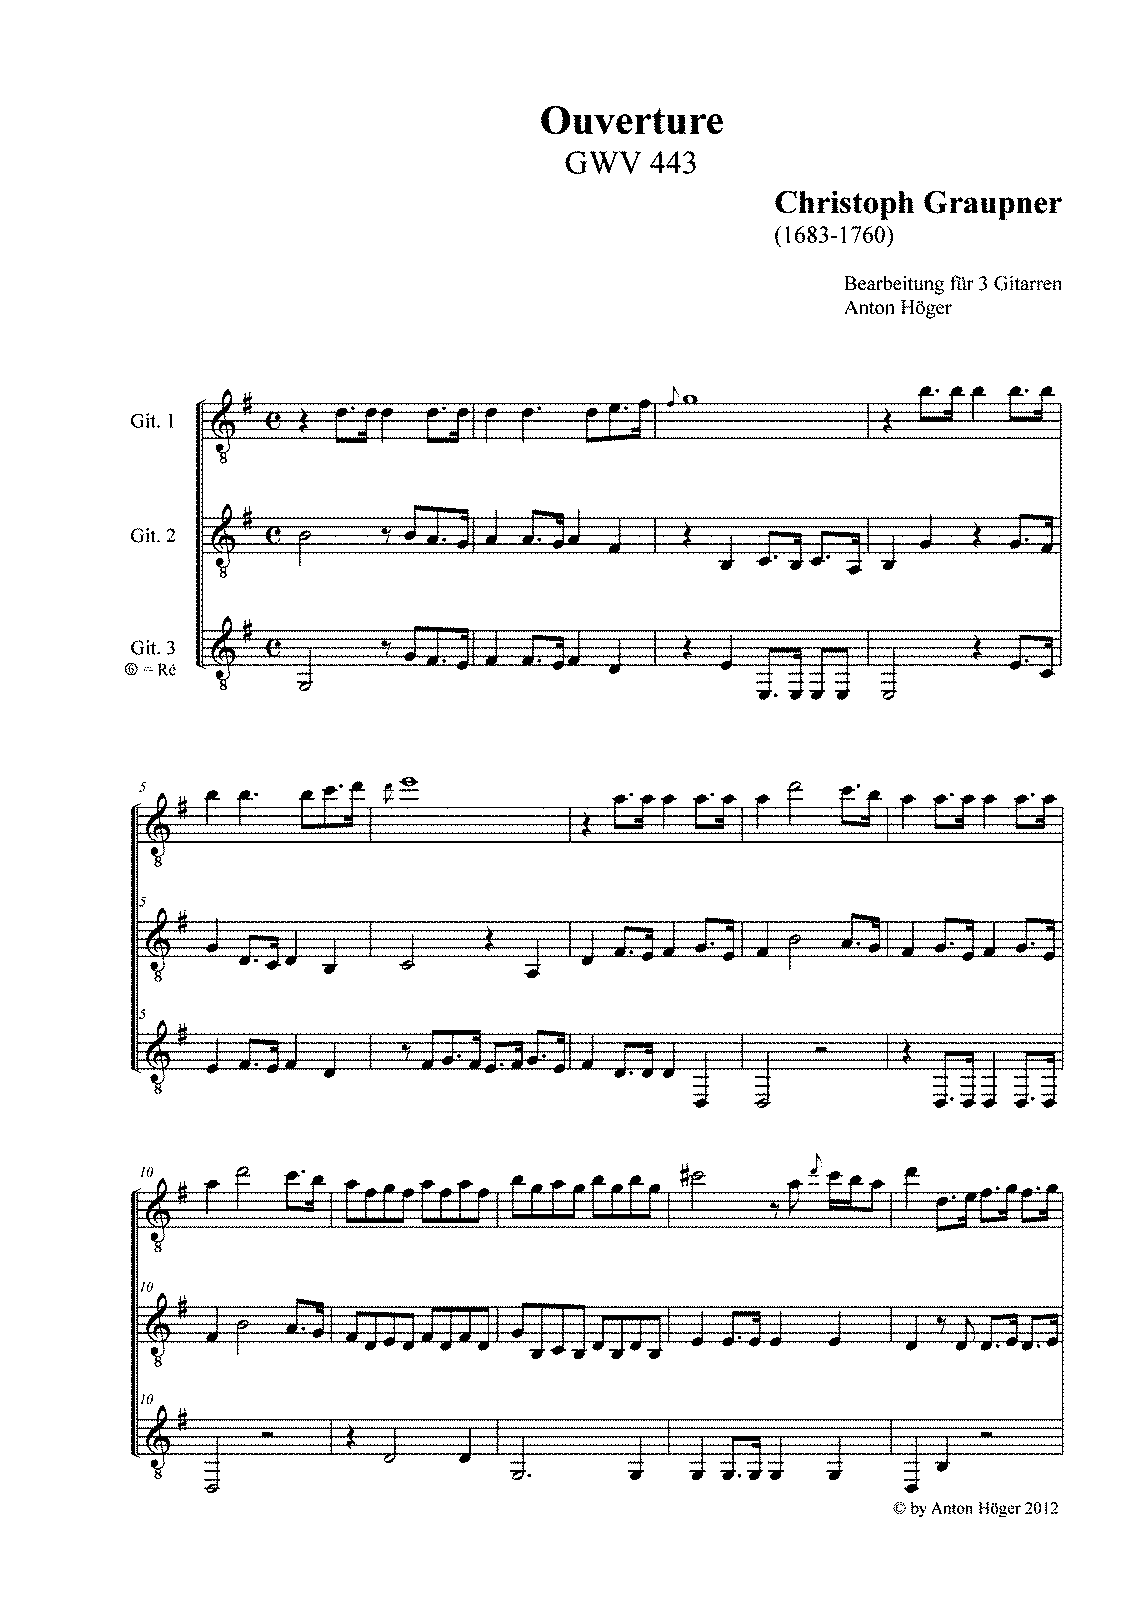 PMLP165297-Graupner, Christoph - Ouverture in F major, GWV 443.pdf